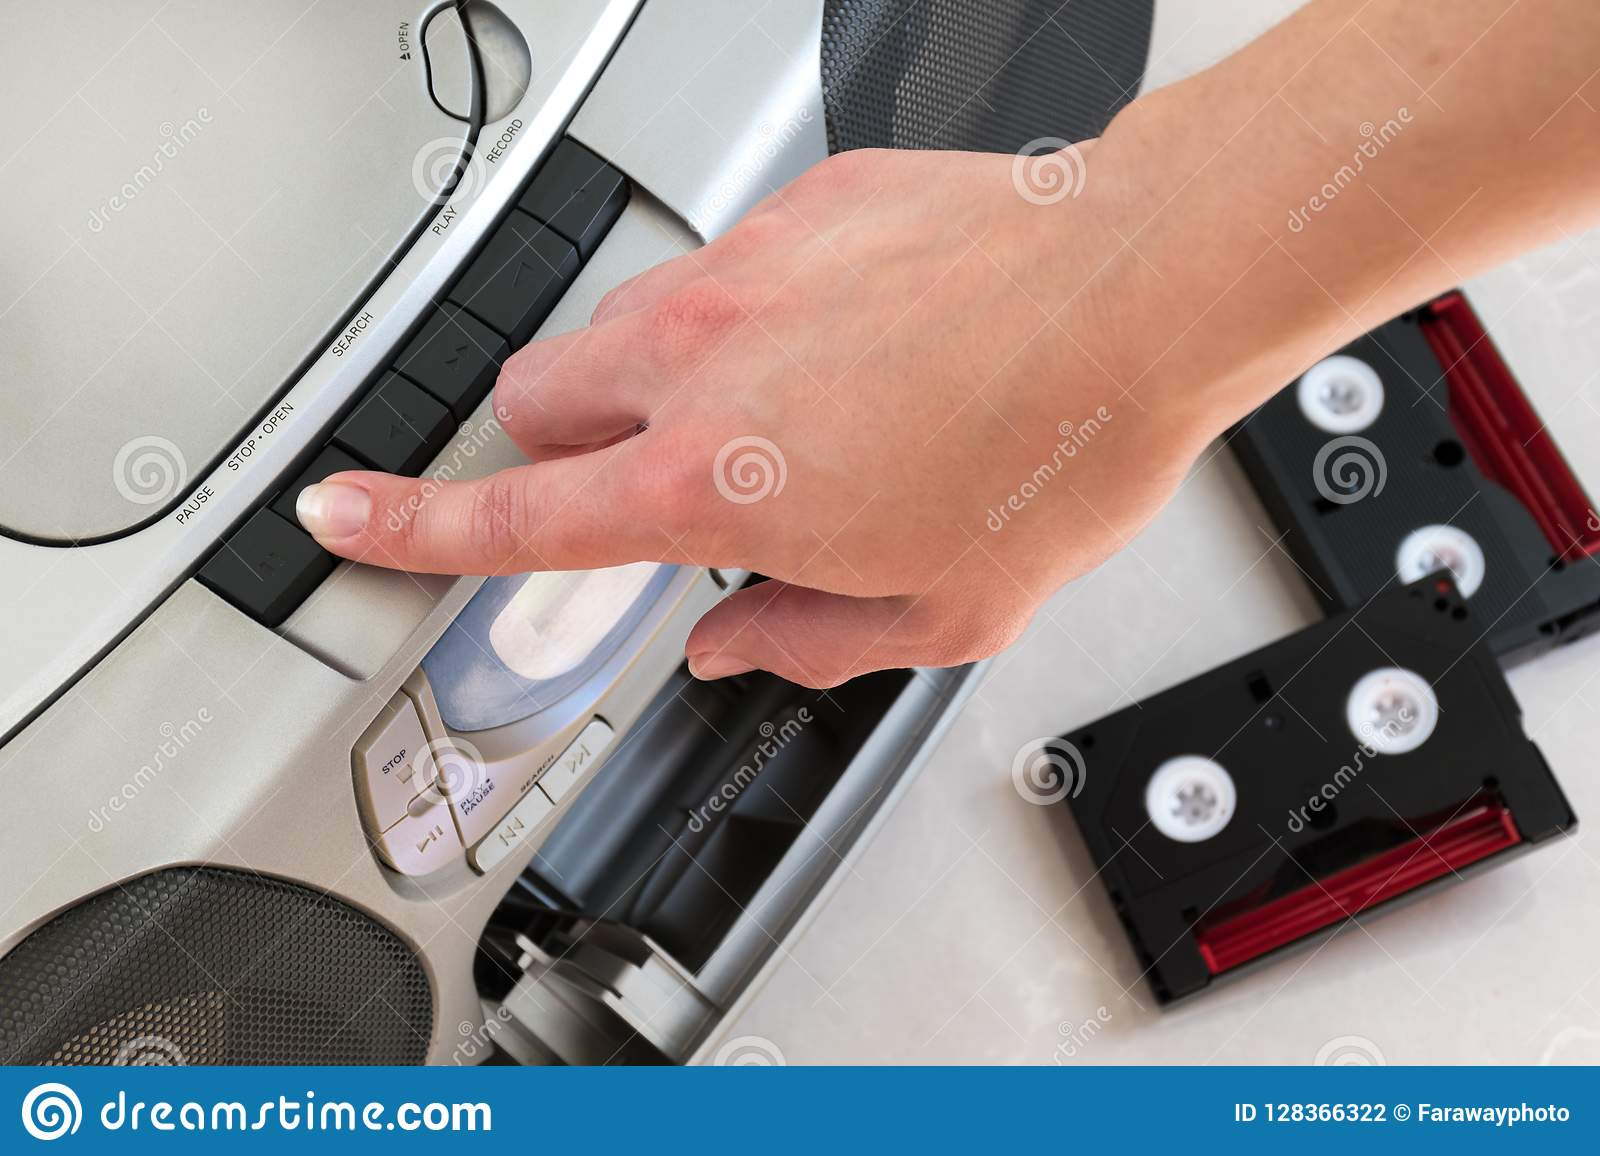 Female hand pushing open button on a grey music center with two black and red cassettes